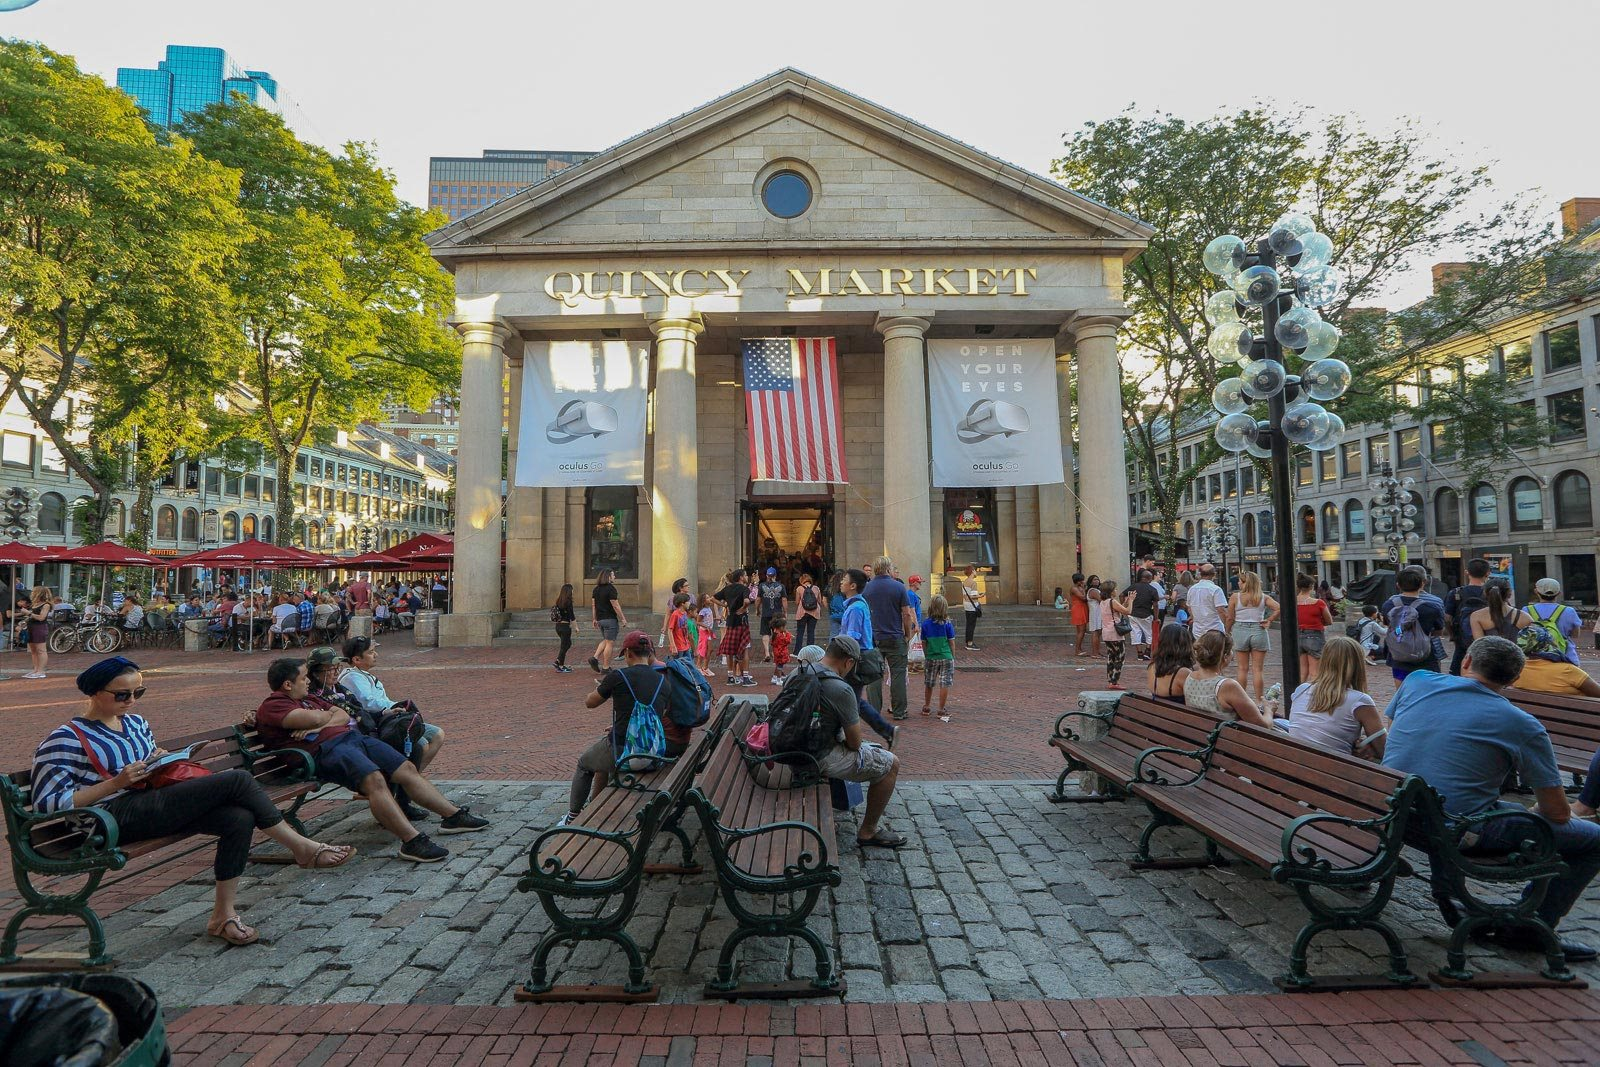 Half Mile to Quincy Market from The Victor by Windsor, Massachusetts, 02114